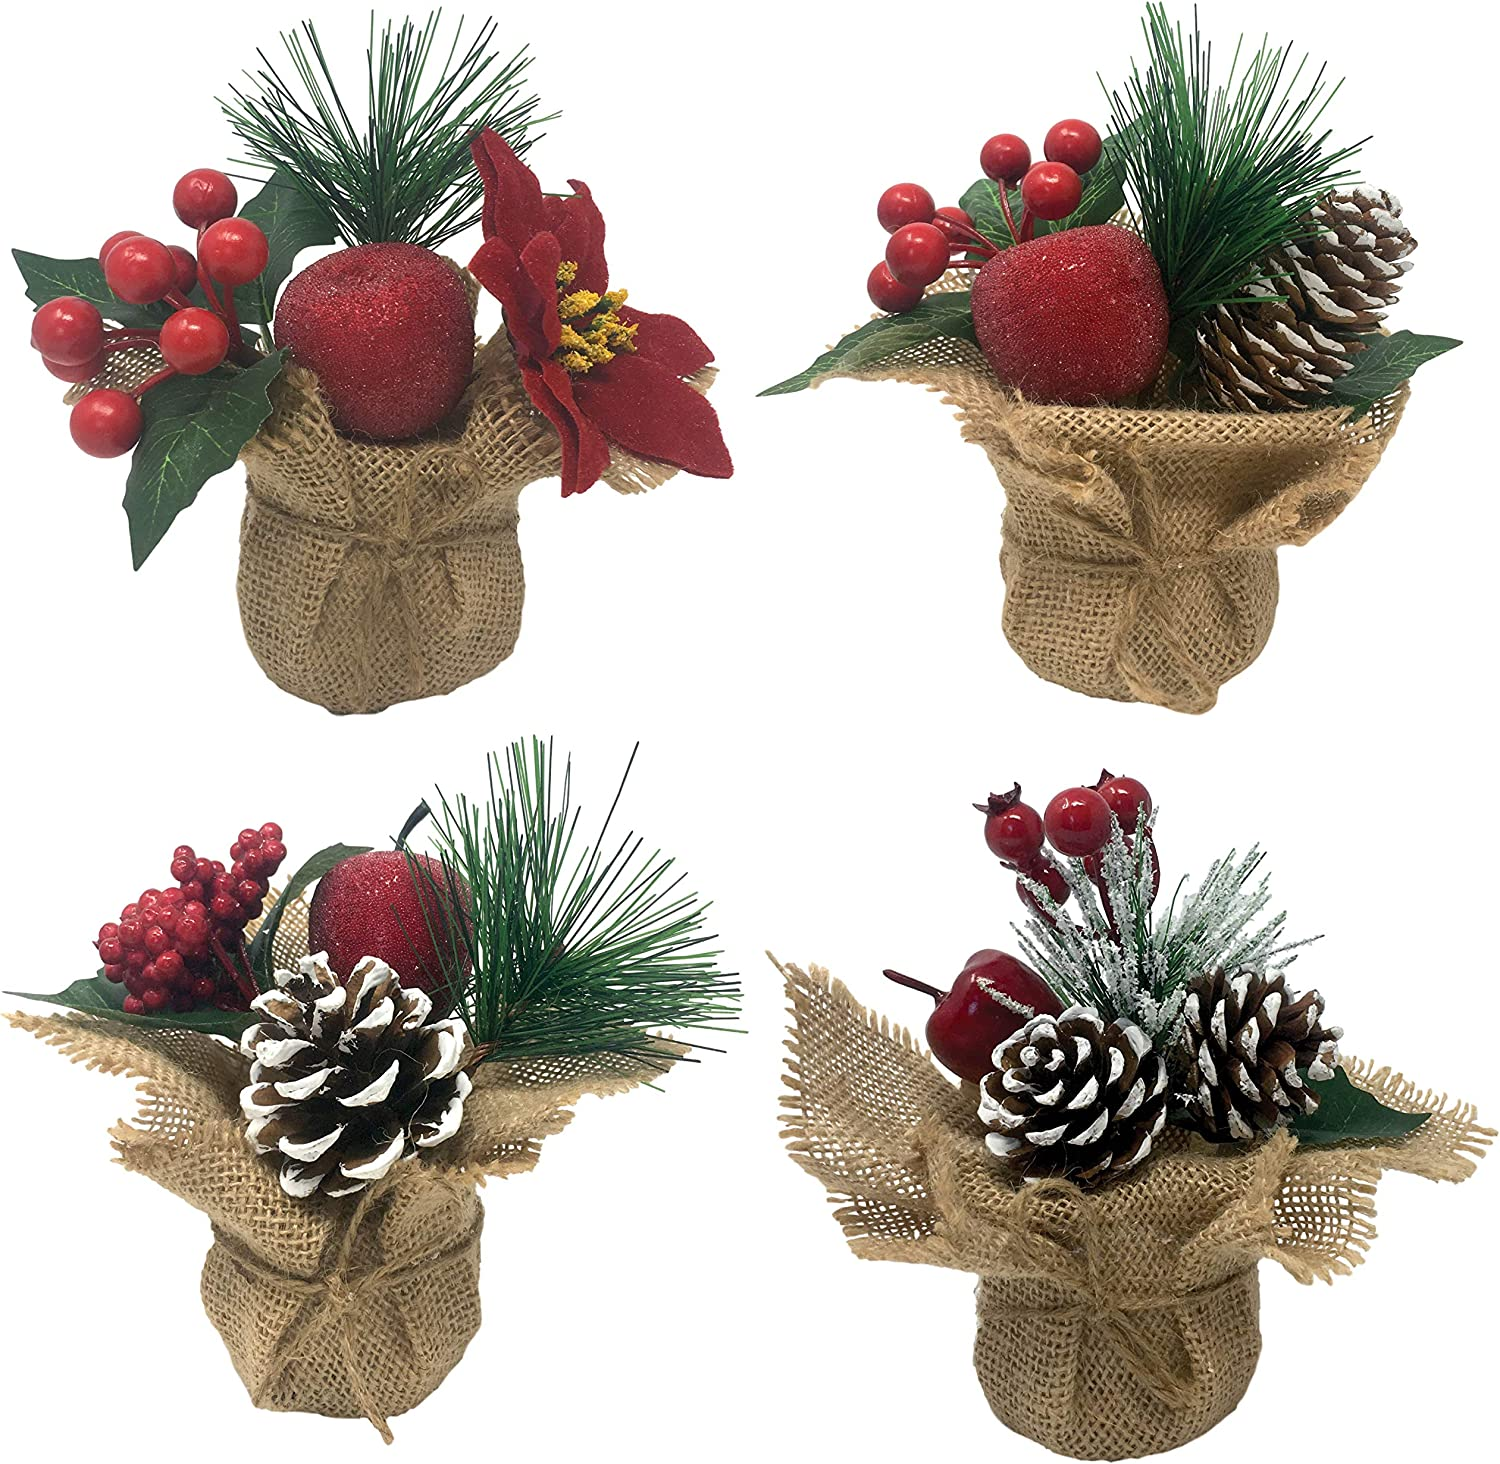 """Potted Christmas Holiday Trees - Set of 4 Burlap Base Holiday Home Decor Trees Sets - White Frosted Pinecones, Red Berries and Pine Needles - Each Stands Approx. 6"""" H"""